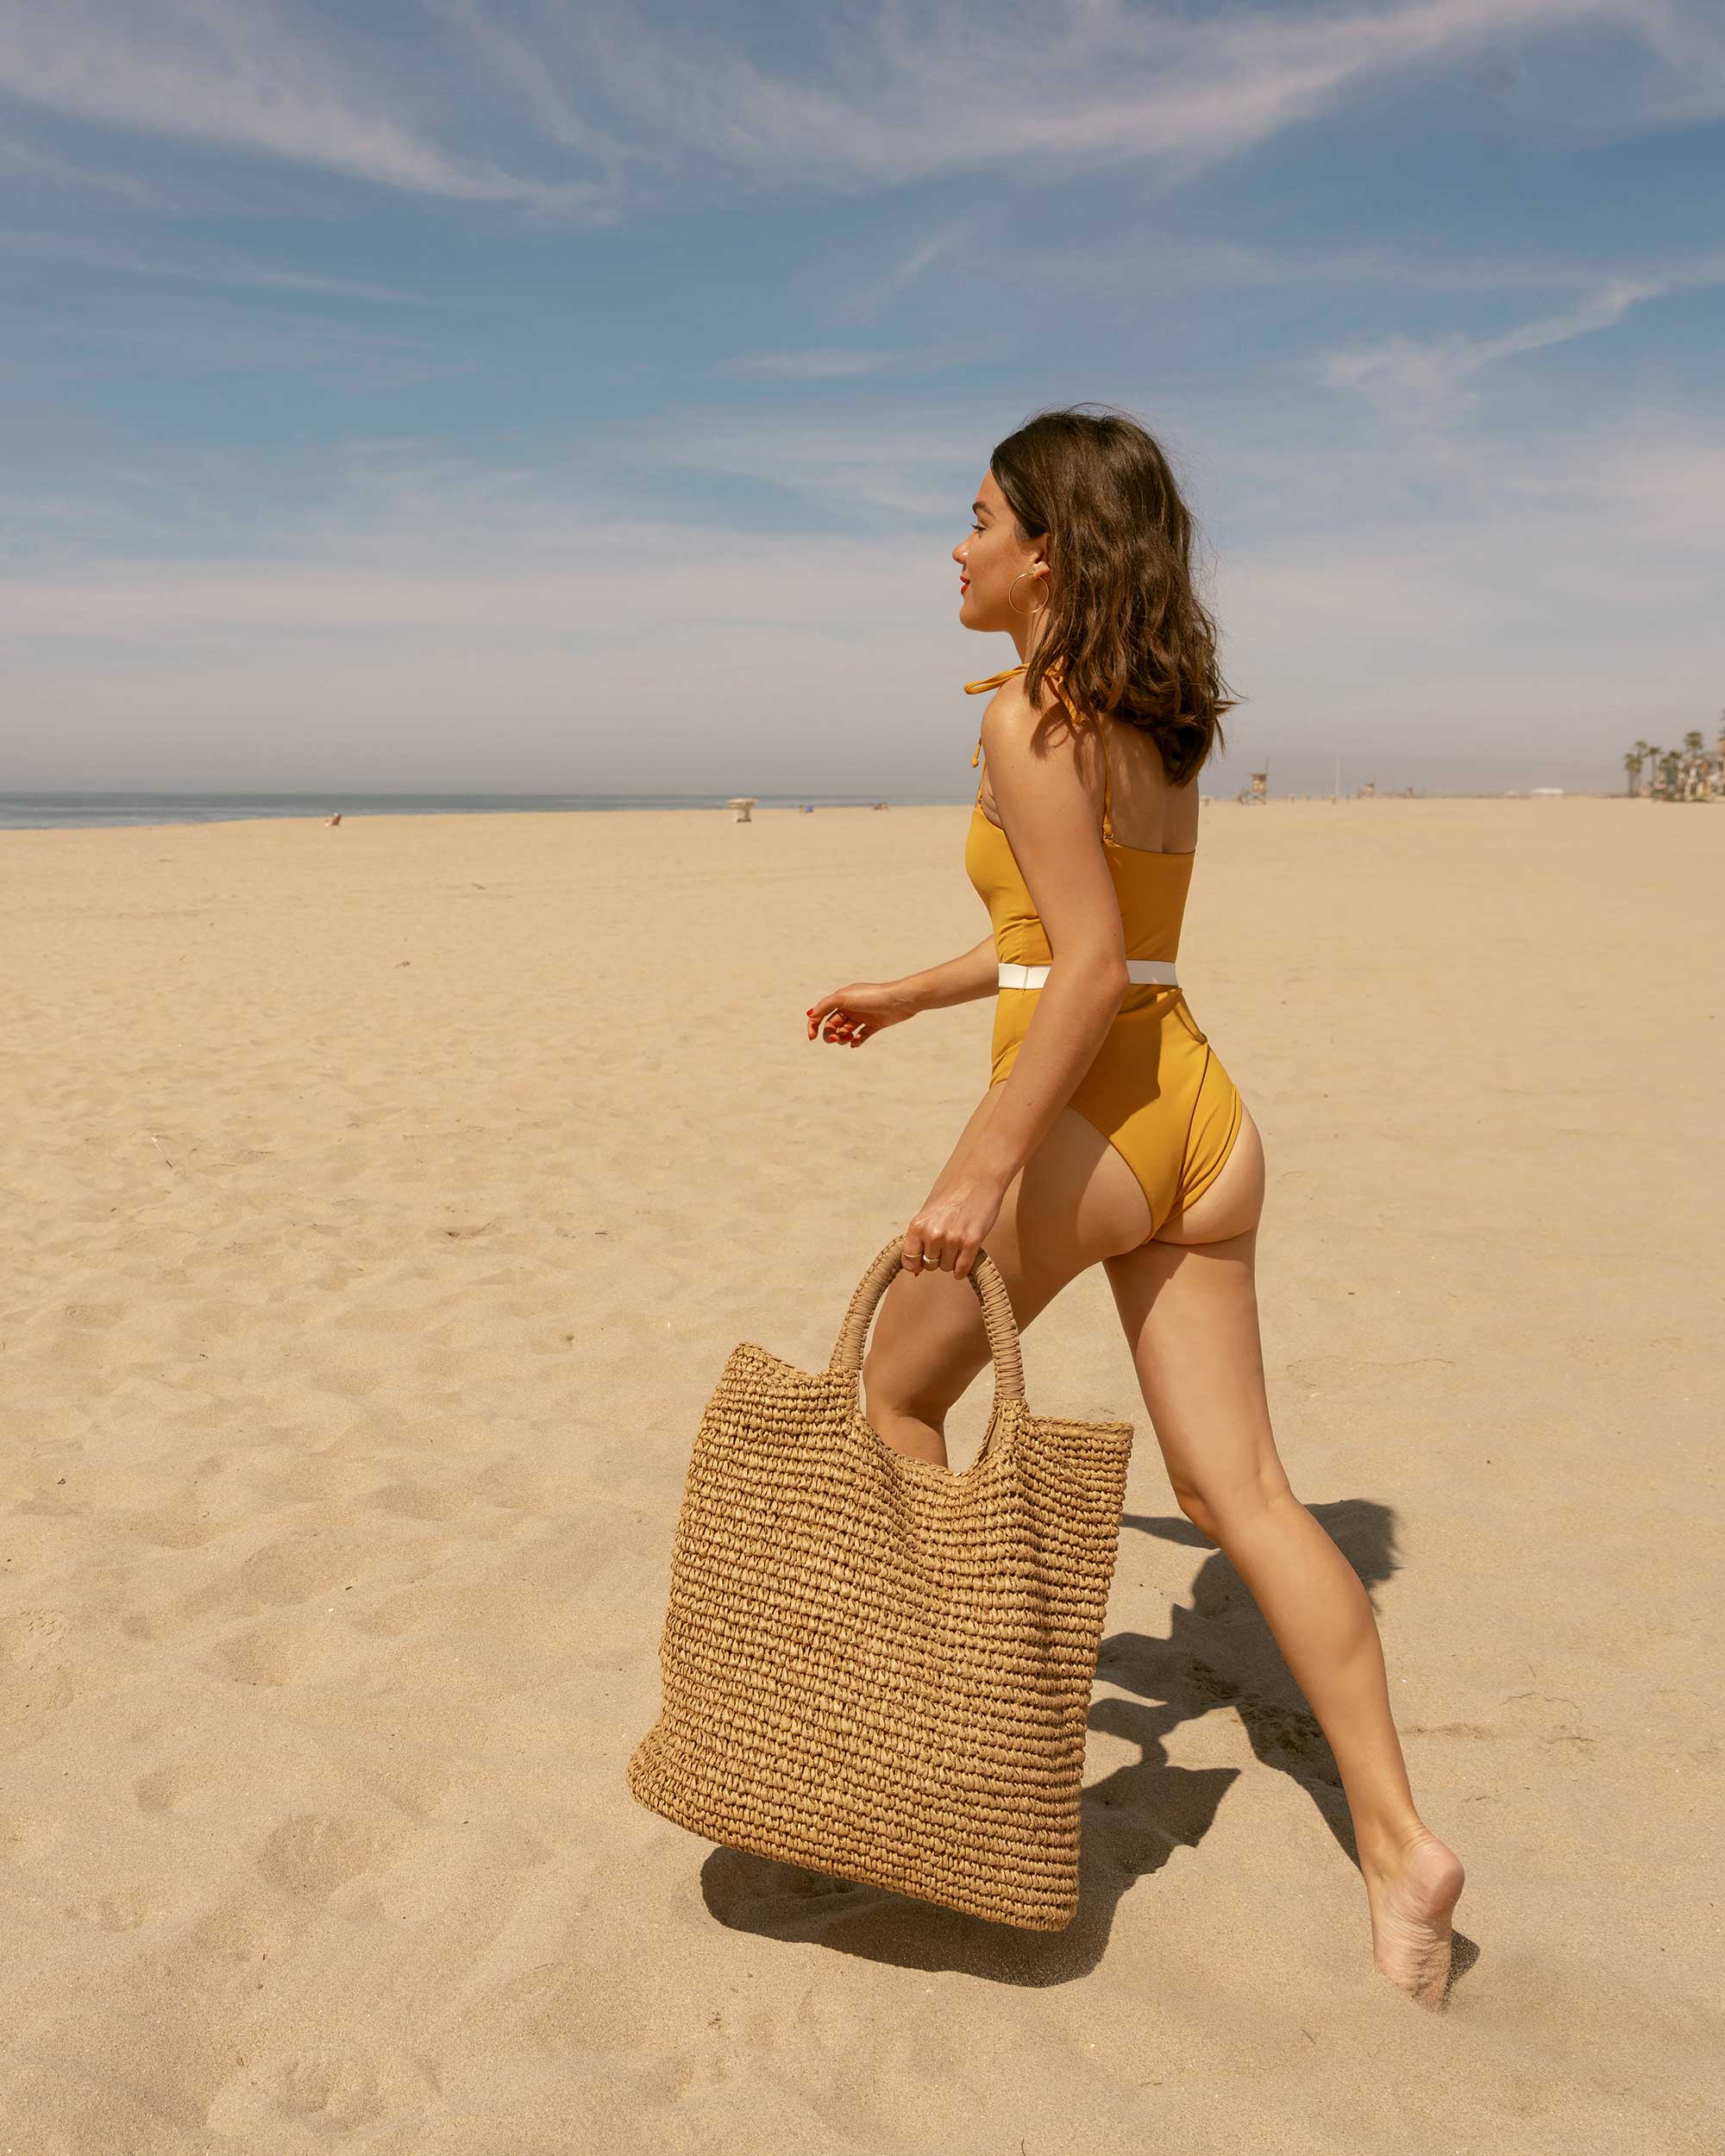 Sarah Butler of Sarah Styles Seattle LSpace Yellow One Piece Swimsuit with belt and Fallon & Royce Mel Straw Oversize Straw Tote Beach Bag in Newport Beach, California for the perfect beach outfit  | @sarahchristine -3.jpg